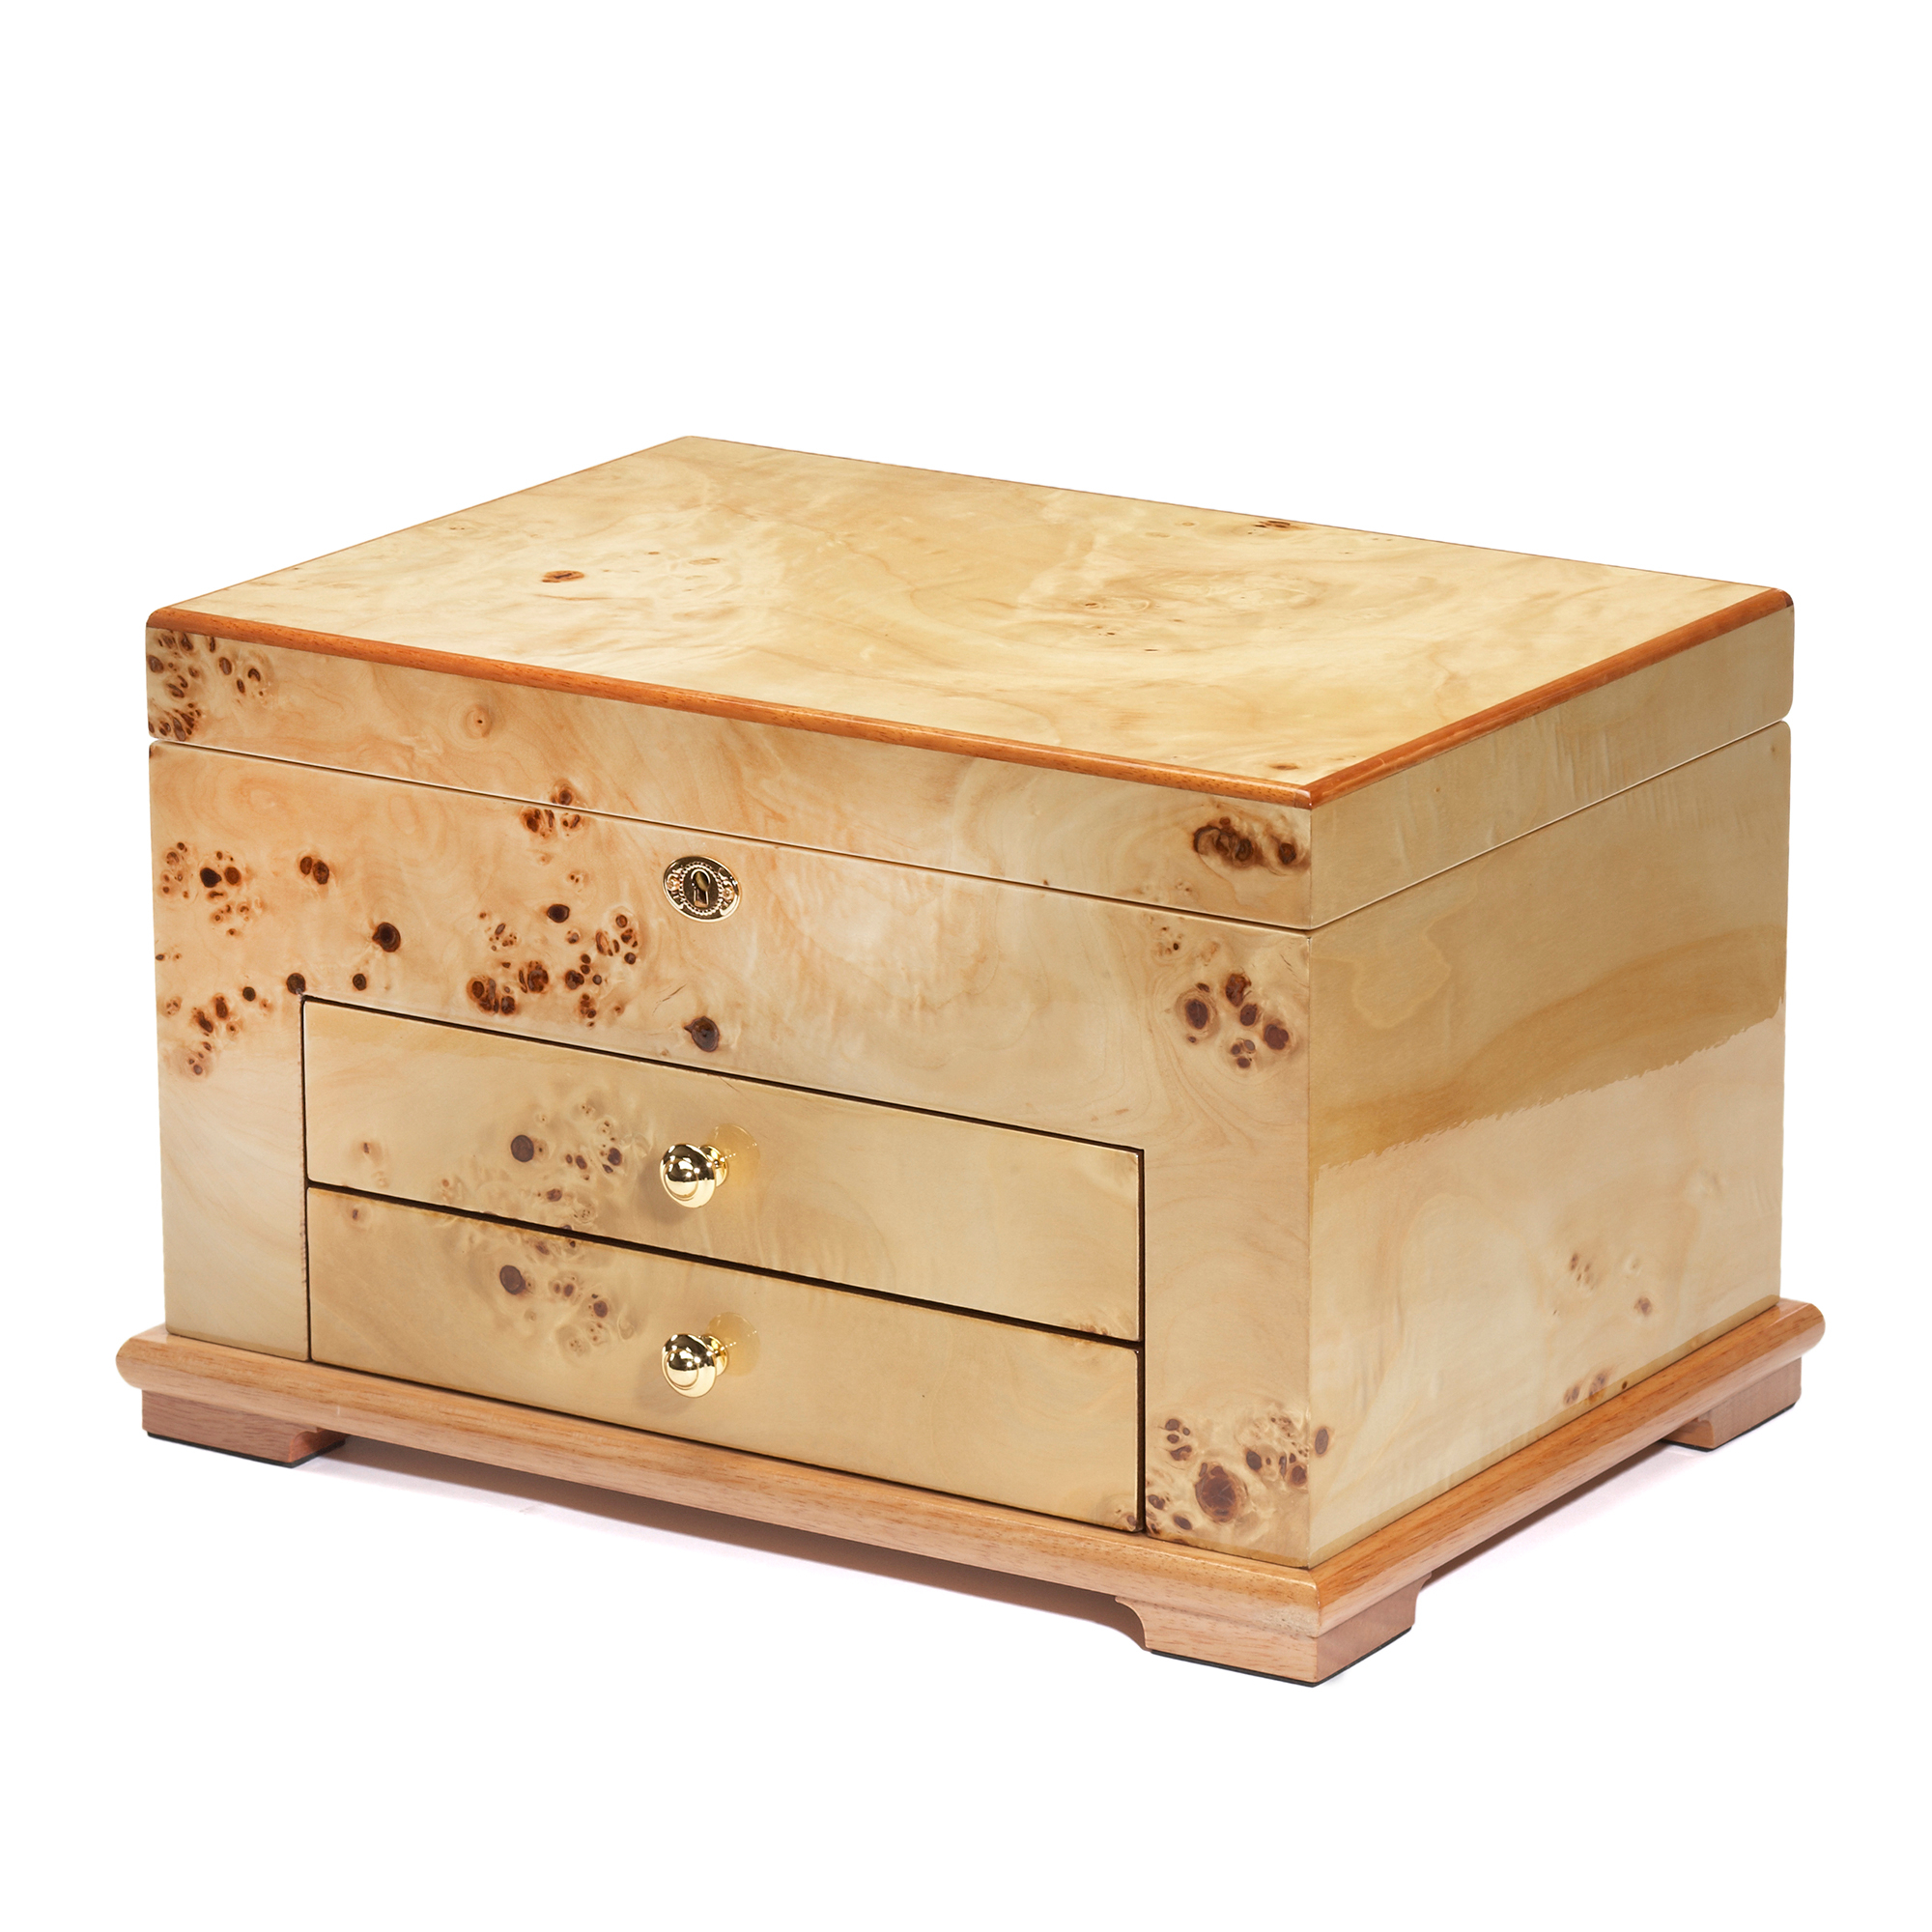 Burlwood 2-Drawer Jewelry Box